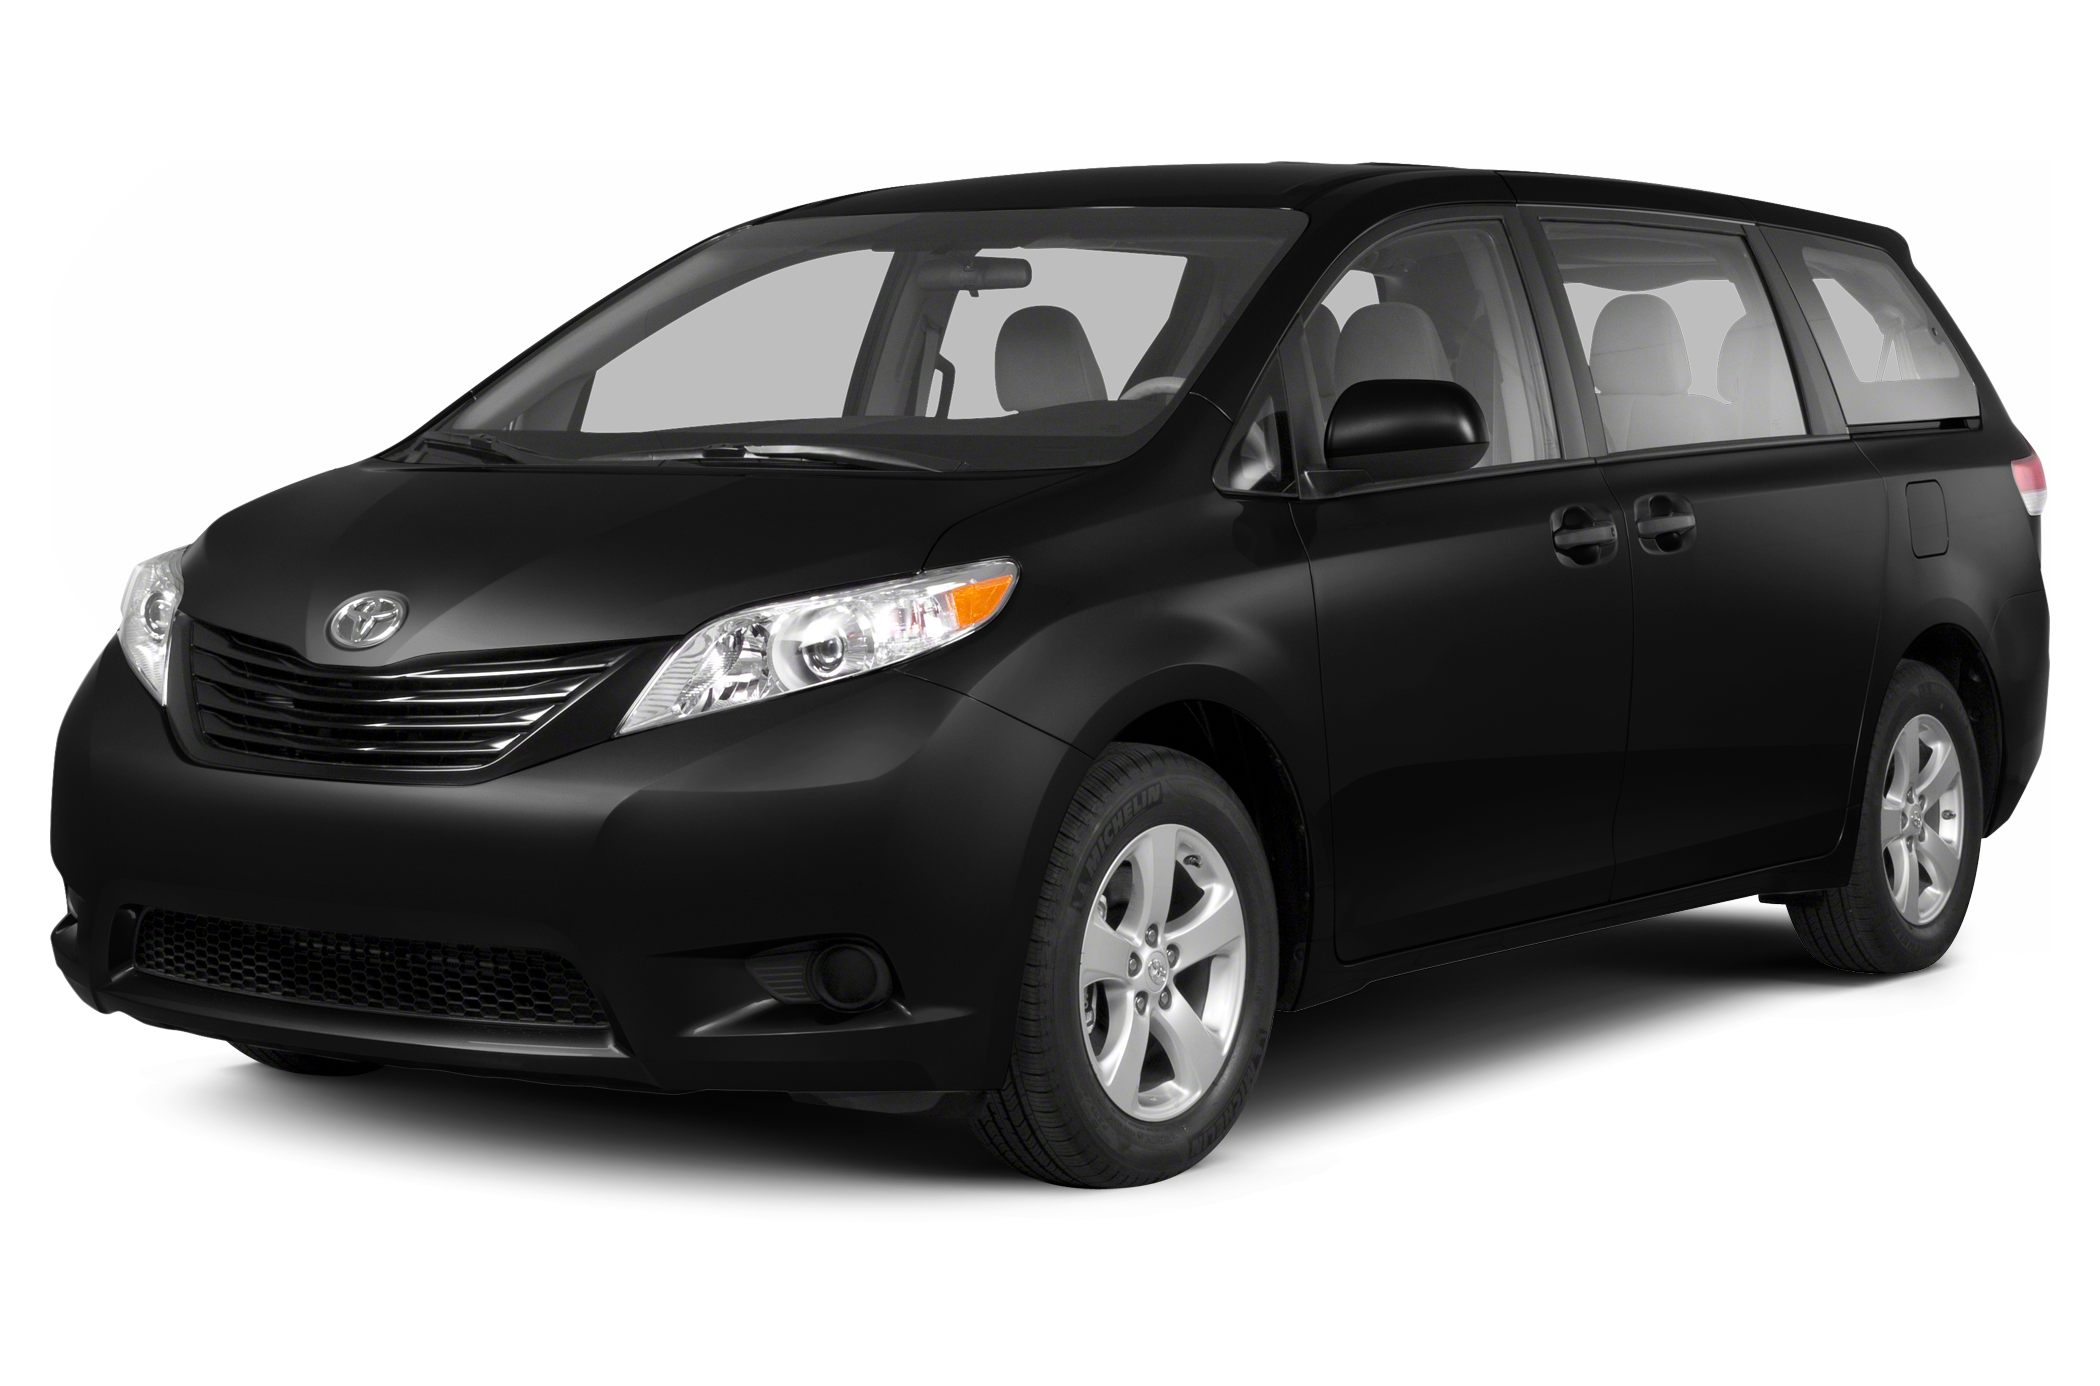 2013 Toyota Sienna XLE 8 Passenger 4100 below Kelley Blue Book EPA 25 MPG Hwy18 MPG City CAR